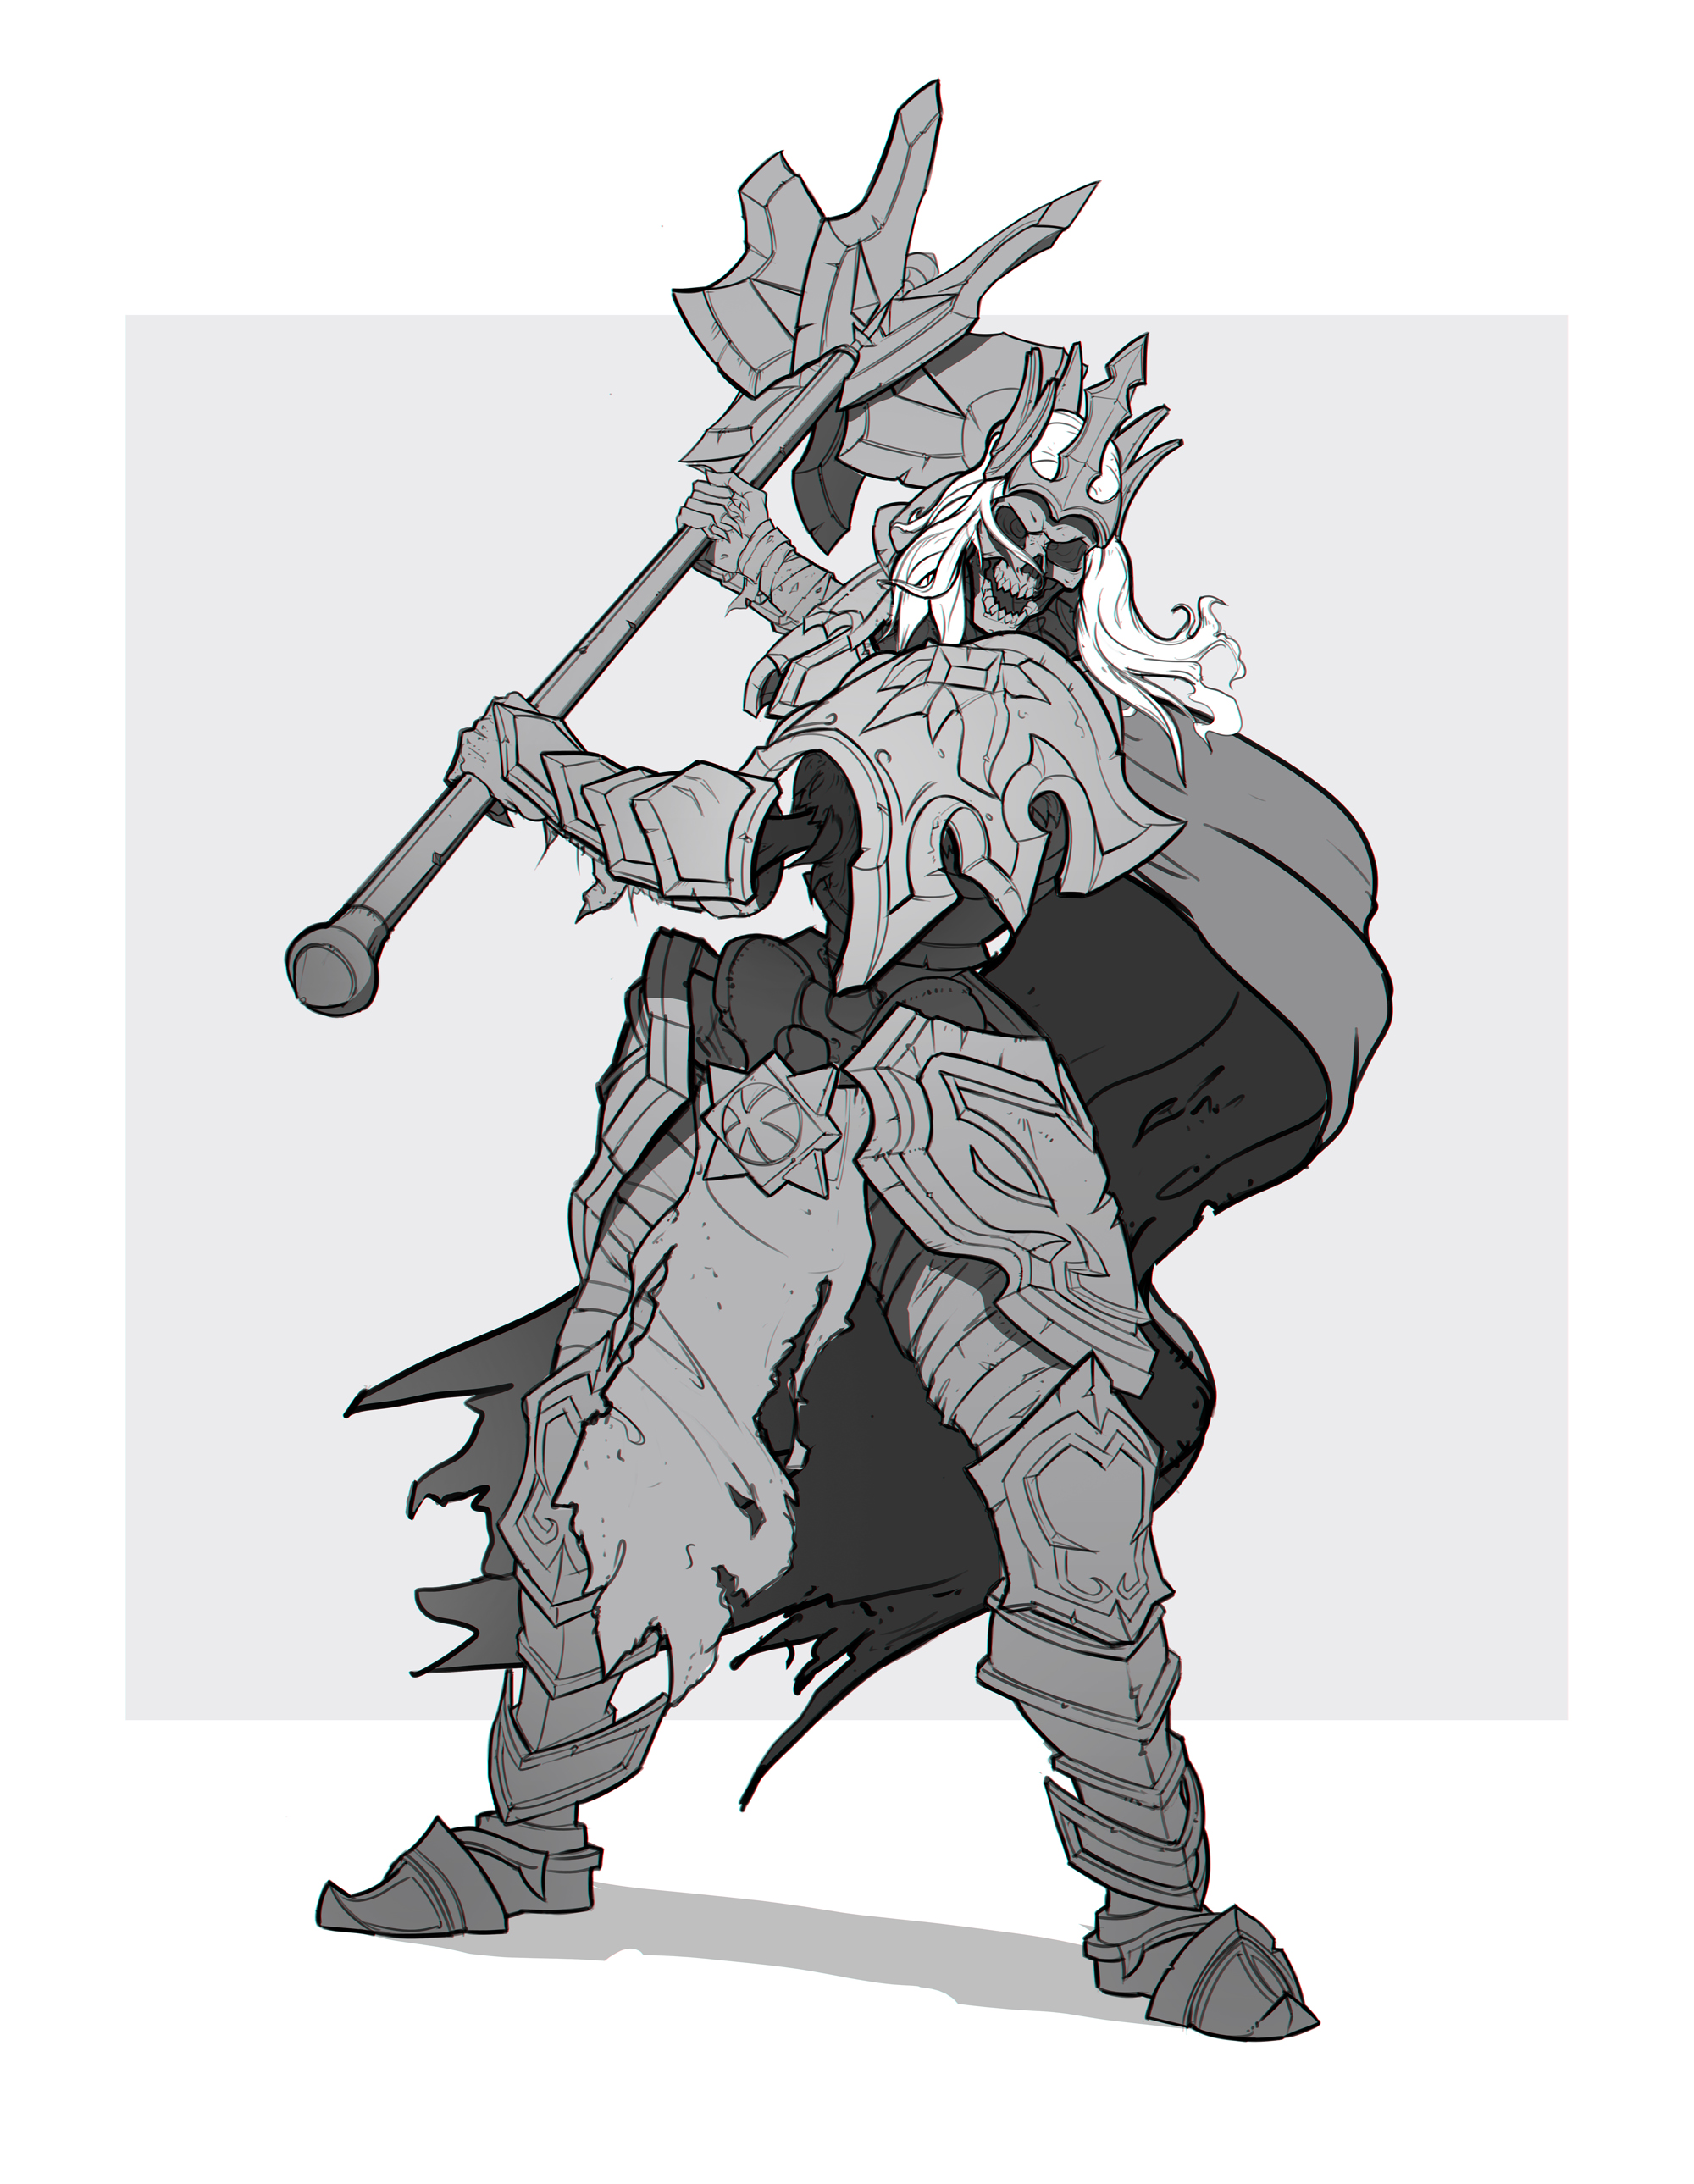 Week 6 king leoric 4 4 by ilyabond on deviantart - Heroes of the storm space lord leoric ...